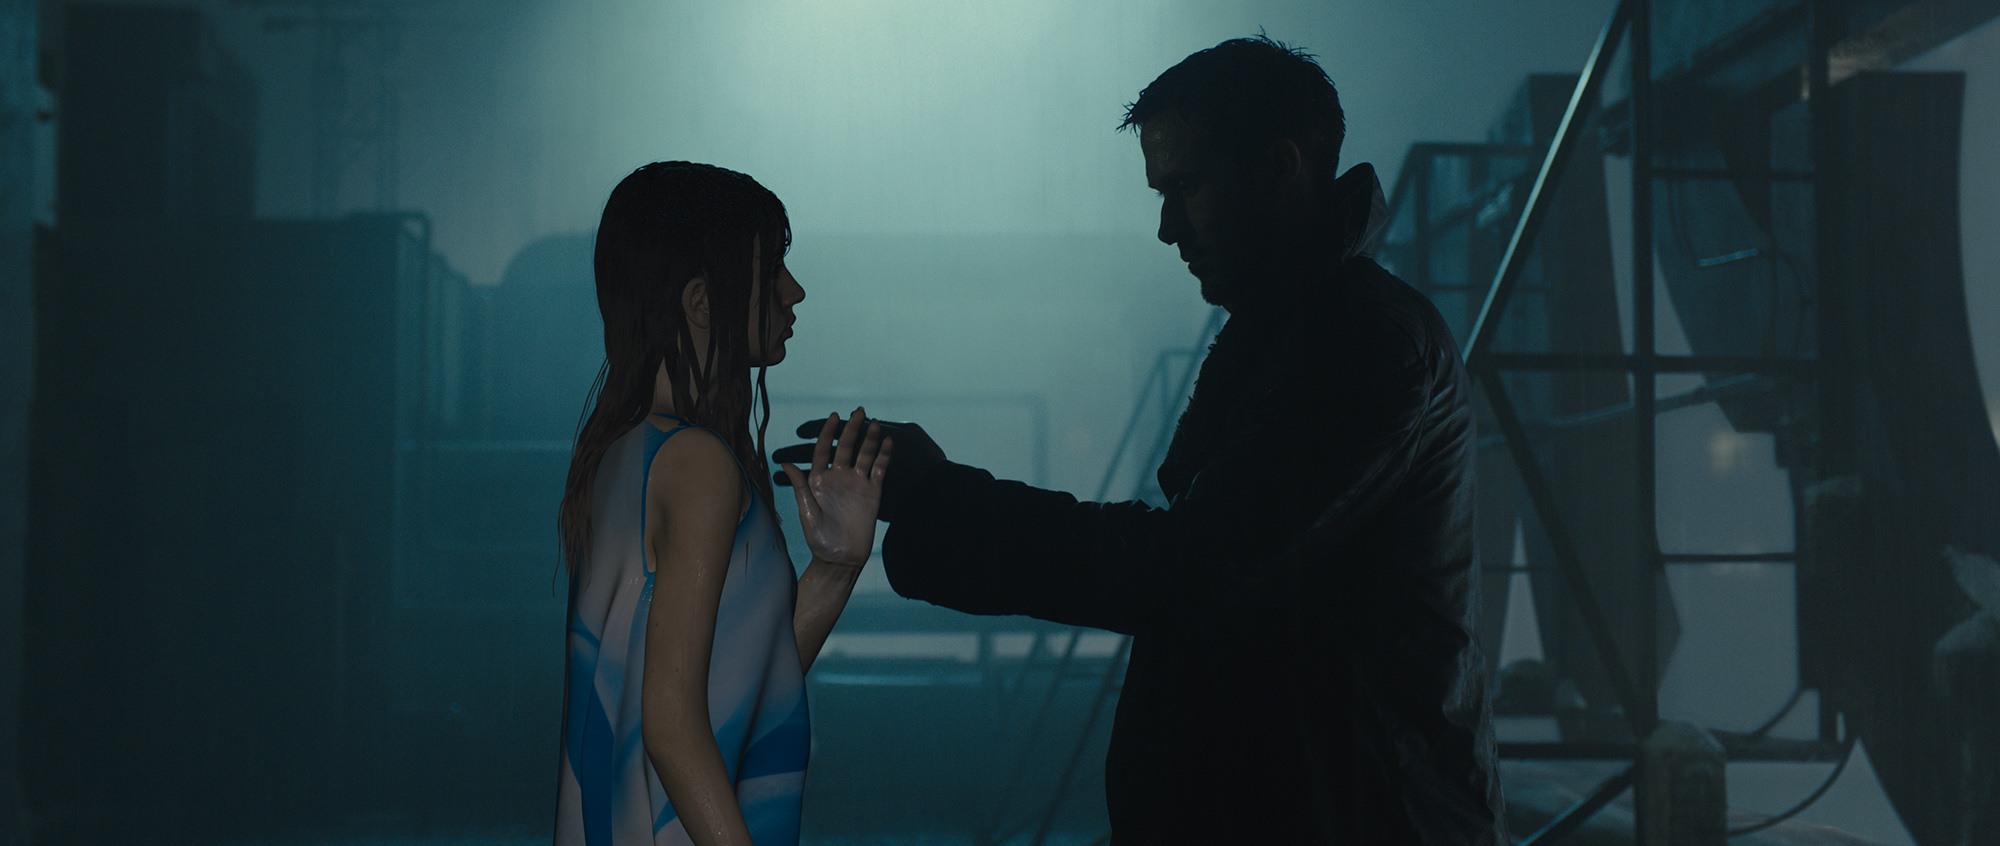 Ana de Armas and Ryan Gosling filming on the set of Blade Runner 2049 (©2017 ALCON ENTERTAINMENT, LLC., WARNER BROS. ENTERTAINMENT INC. AND COLUMBIA TRISTAR MARKETING GROUP, INC. ALL RIGHTS RESERVED.)